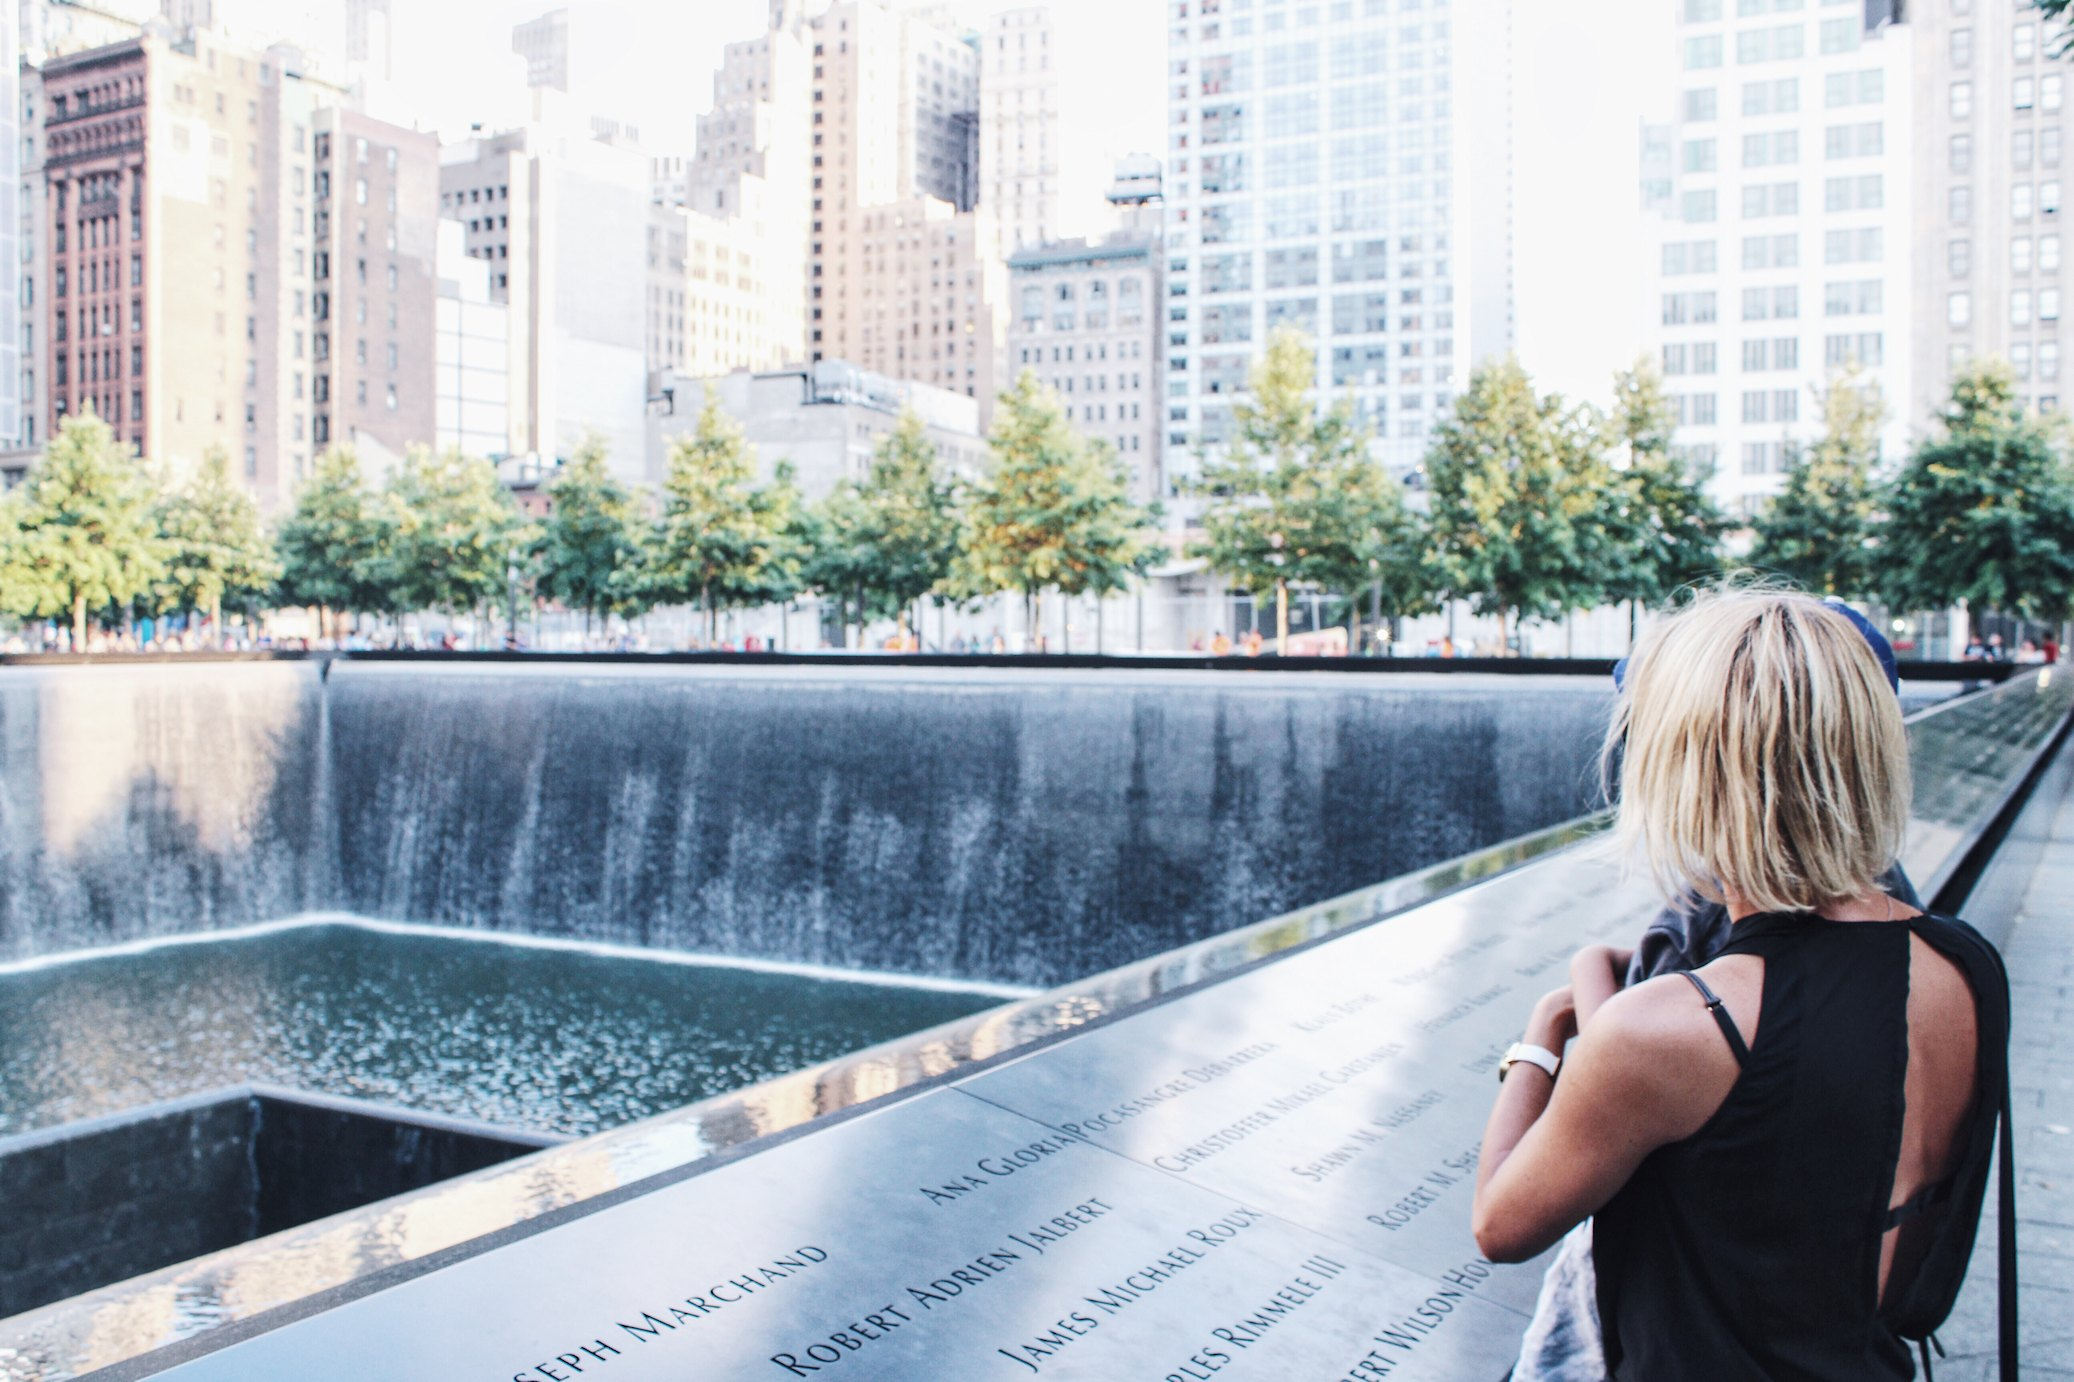 USA, Nowy Jork, 9/11 memorial